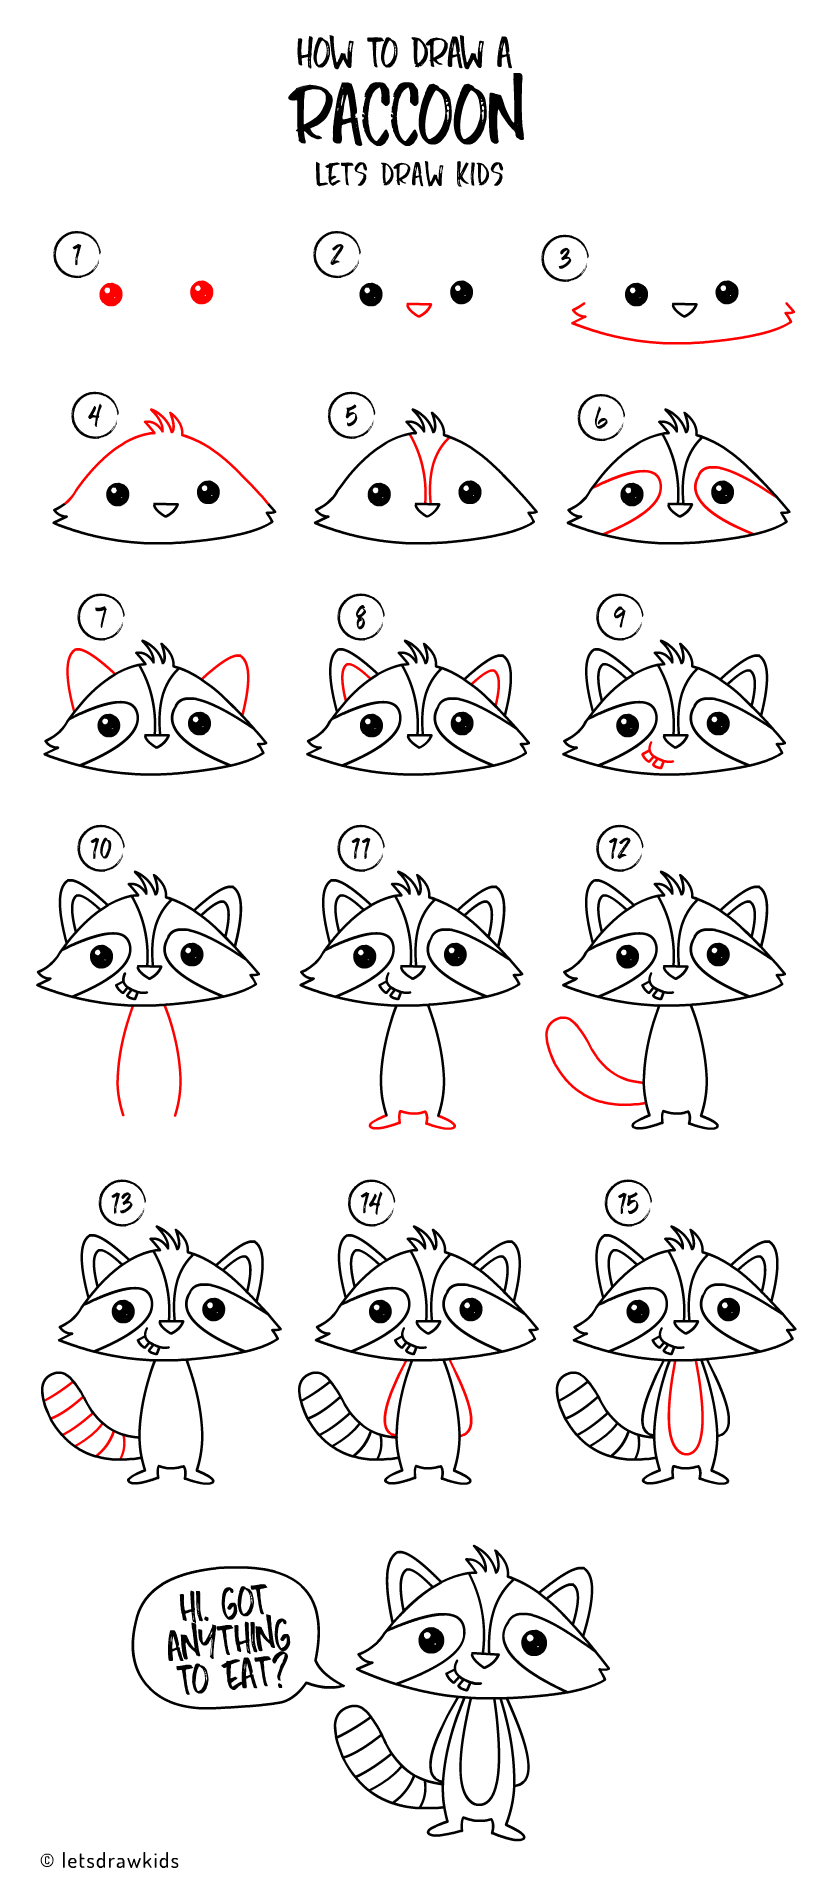 Uncategorized Easy Things To Draw For Kids Step By Step how to draw a raccoon easy drawing step by perfect for kids